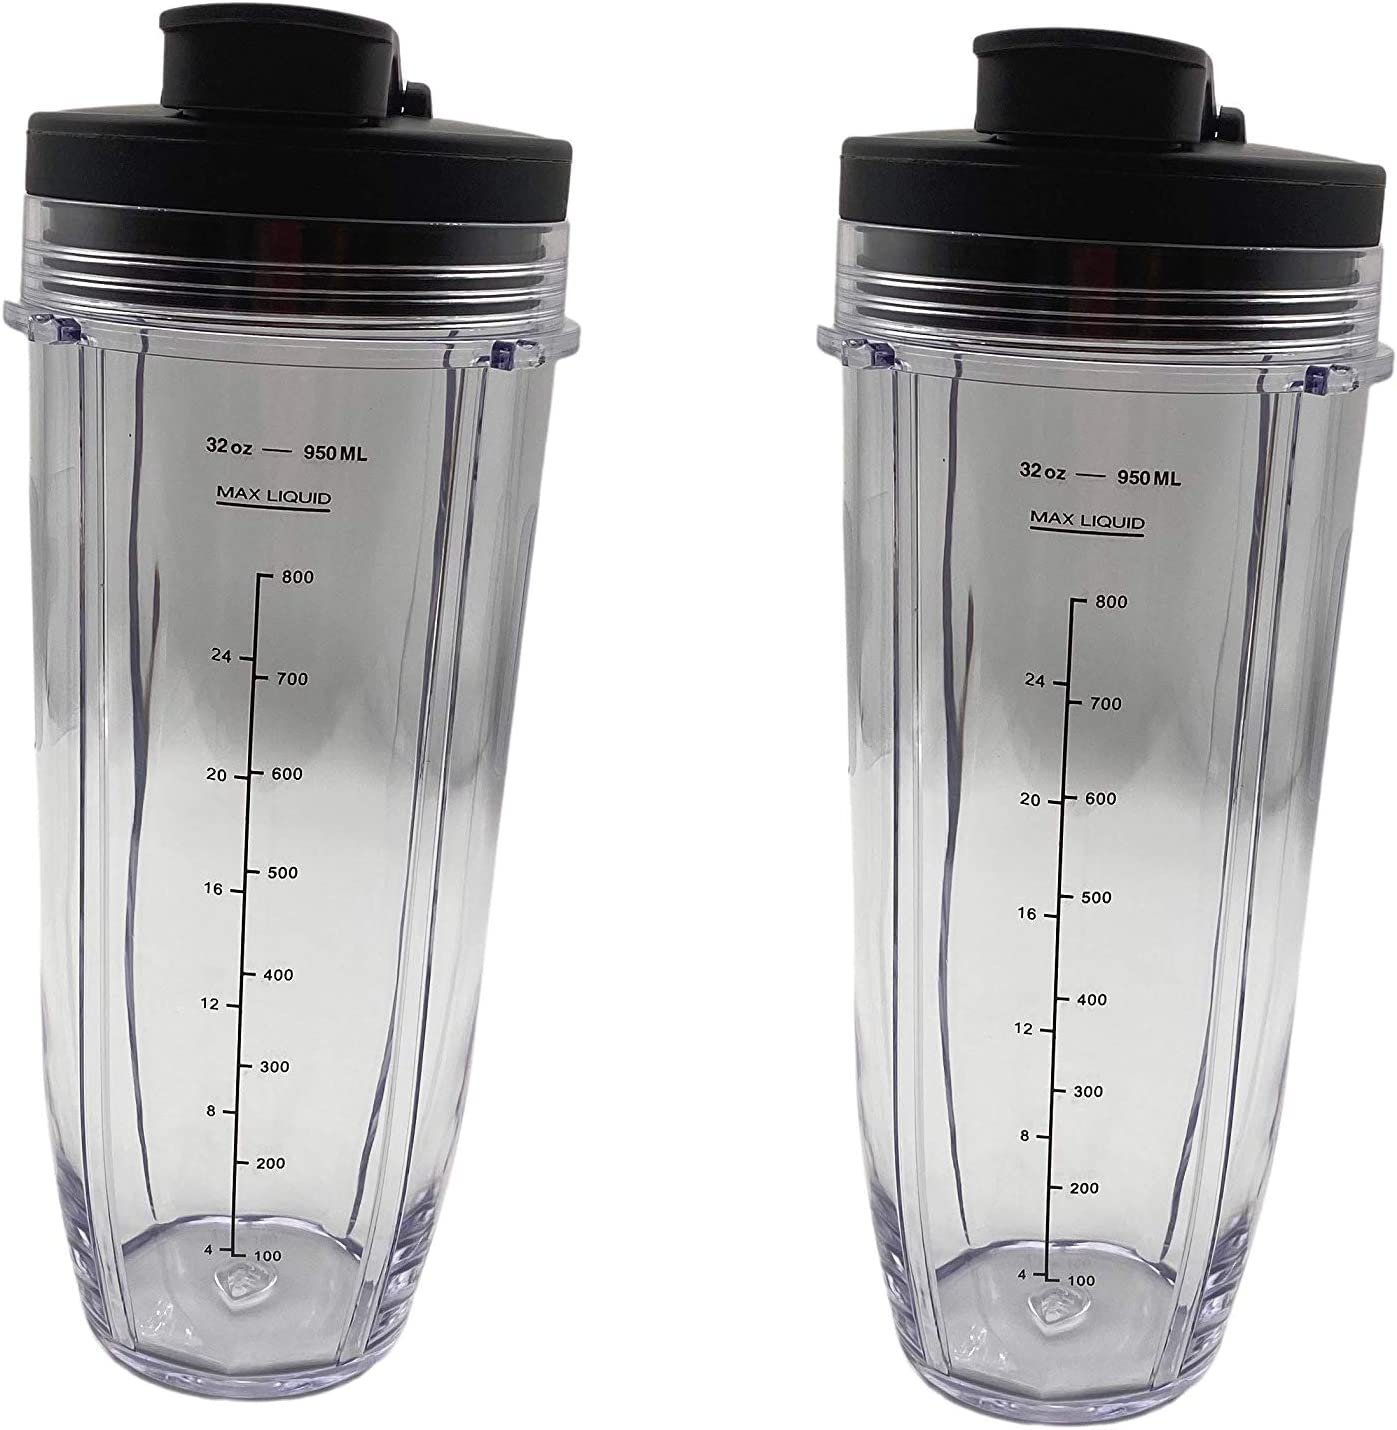 QRInnovations Durable 32 oz (2 Pack) Blender Cups With Sip & Seal Lids Compatible With Nutri Ninja Auto IQ Series Blenders (2 Packs, 32 oz Cups, Sip & Seal Lids)